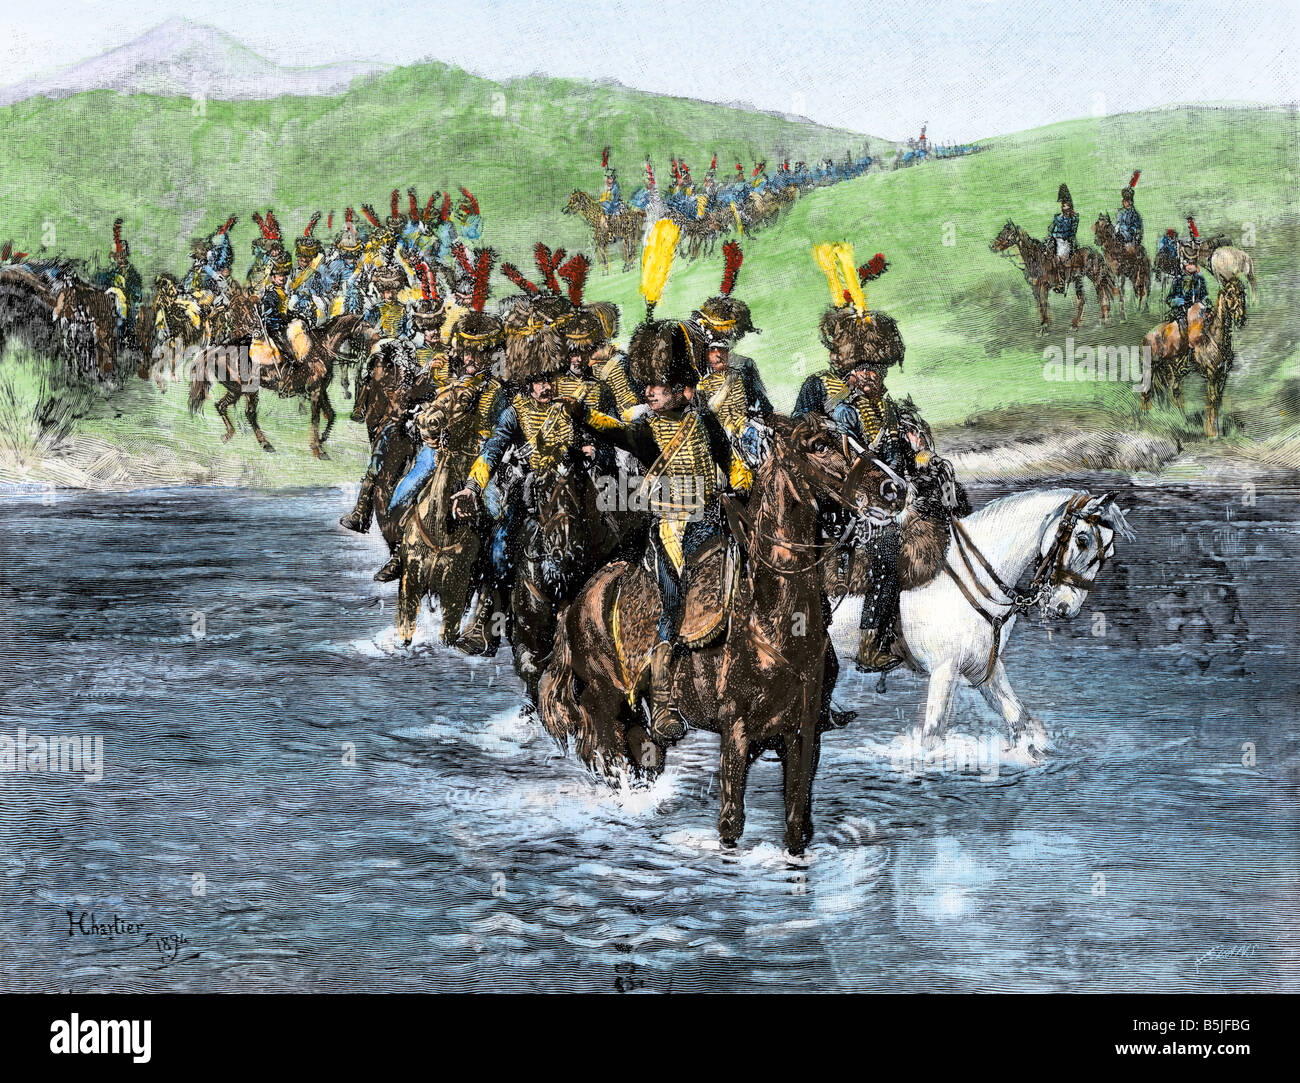 French cavalry fording a river during their invasion of Spain Napoleonic Wars. Hand-colored halftone of an illustration Stock Photo